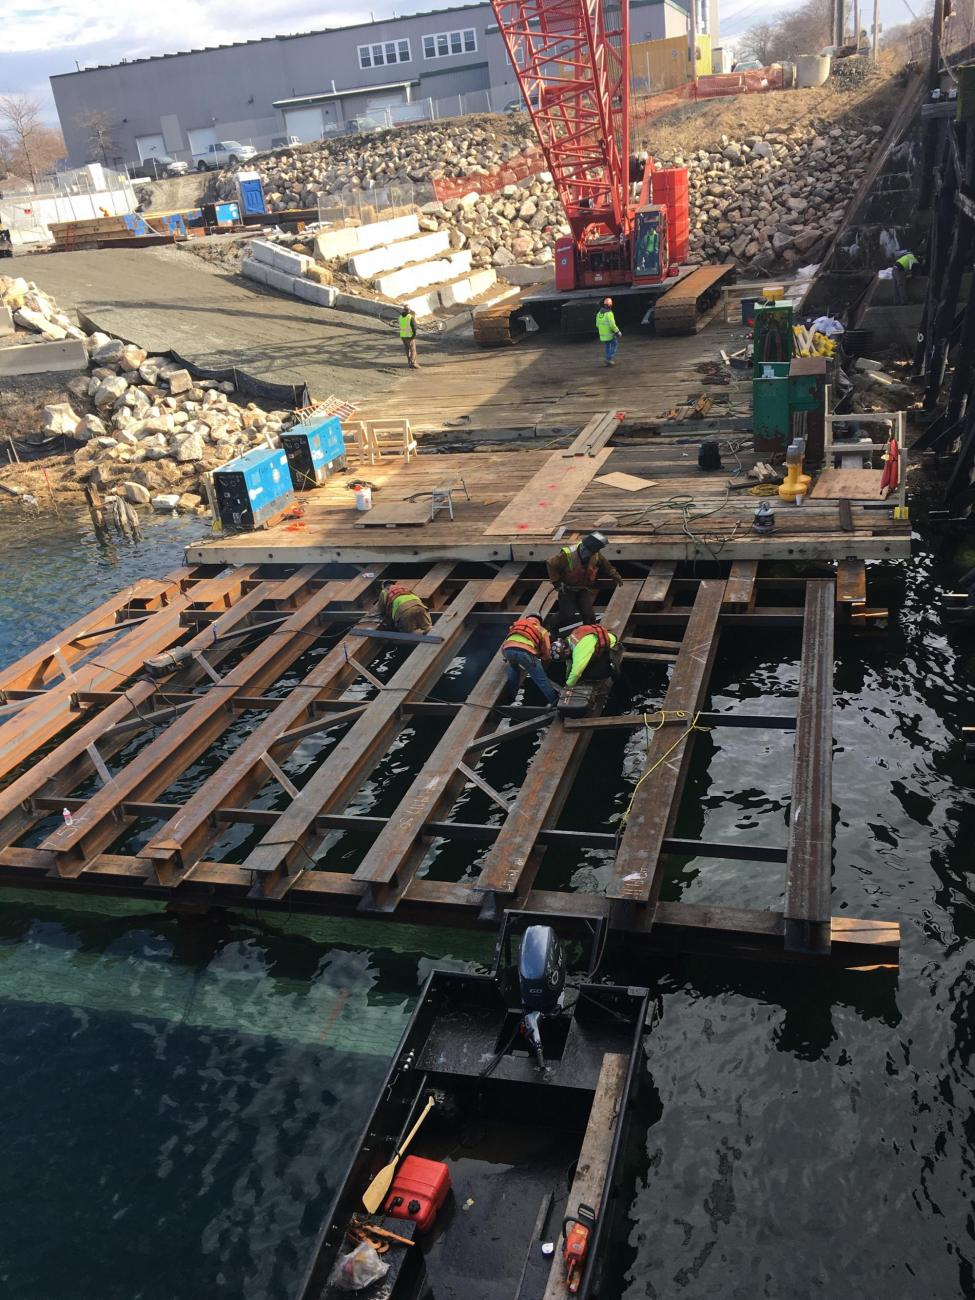 Intalling a temporary work platform, as part of Gloucester Drawbridge Replacement construction